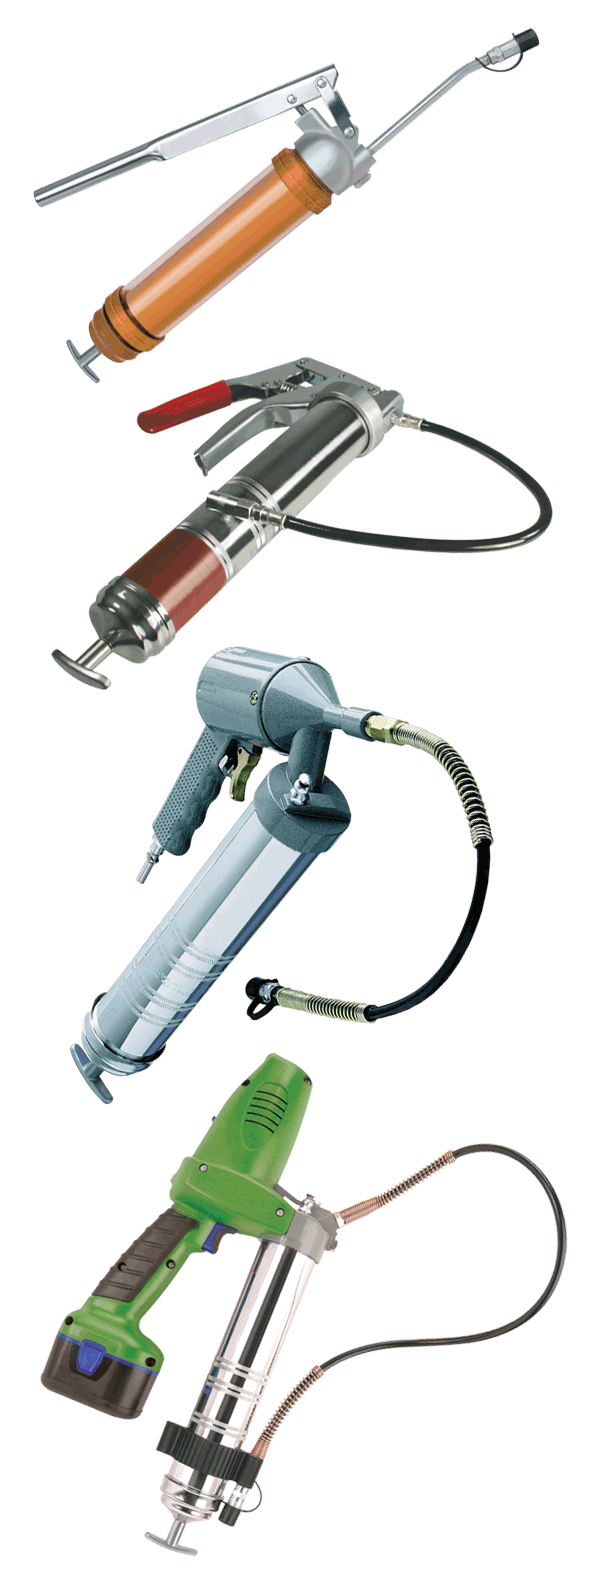 medium resolution of grease guns have three ways in which they can be powered by hand air or electricity aside from these variations the hand powered or manual grease guns